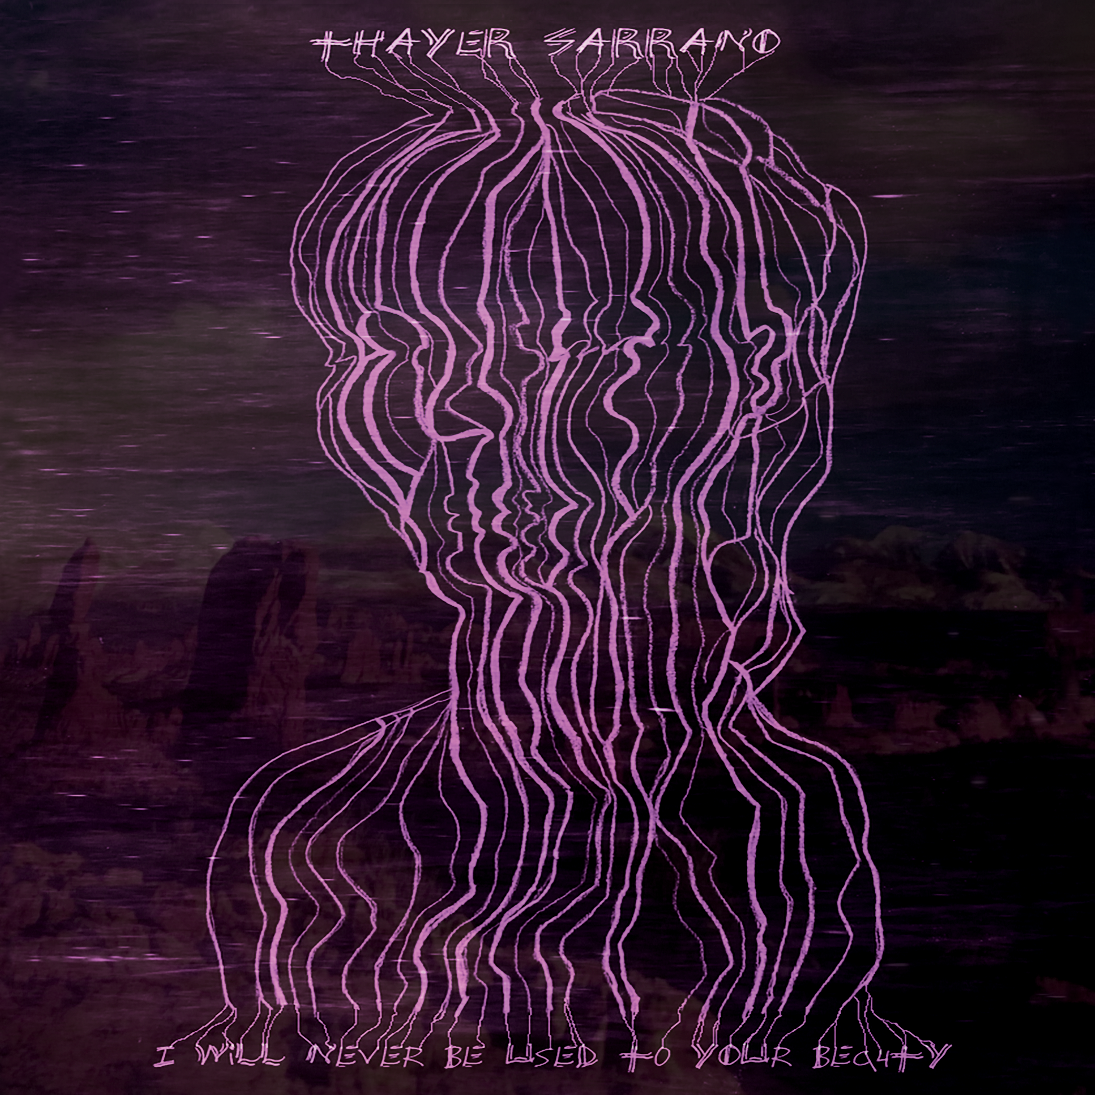 Thayer Sarrano - I Will Never Be Used to Your Beauty